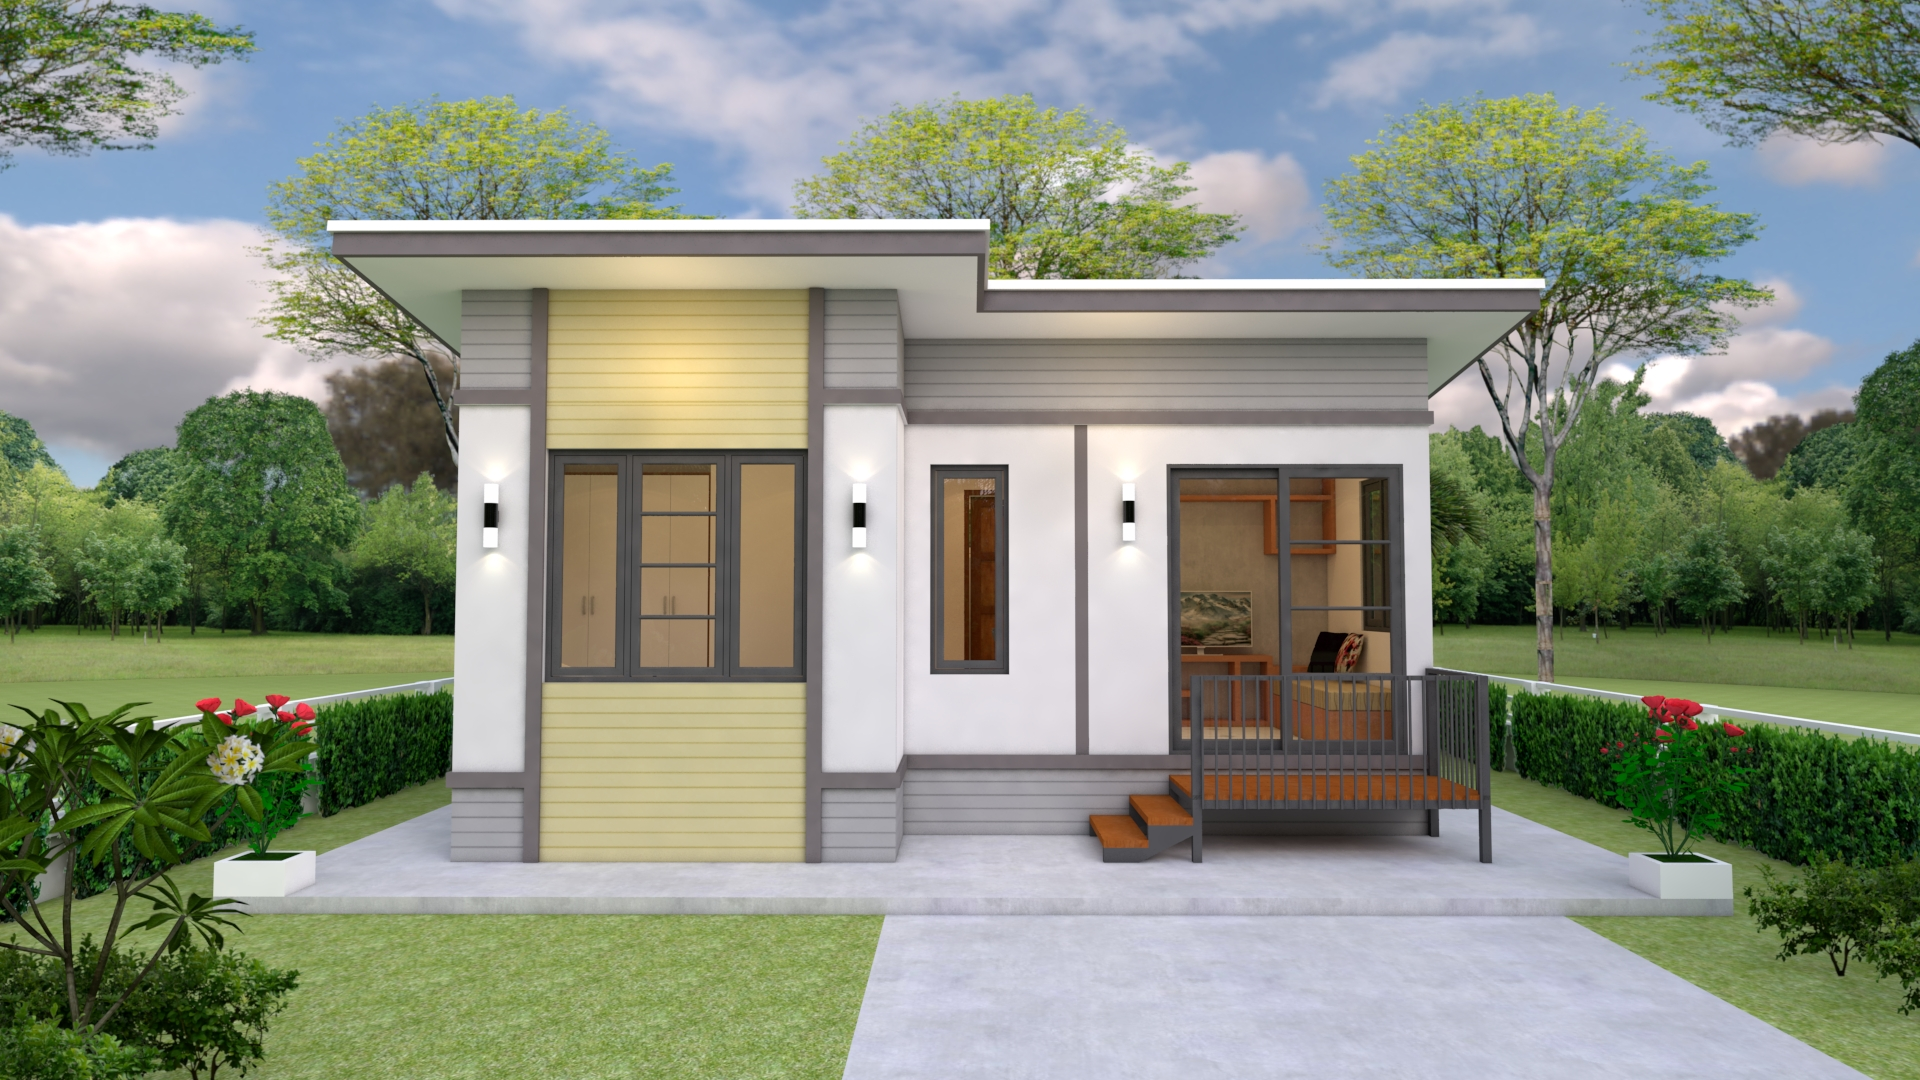 Simple Small House Design 7x6 Meter 23x20 Feet 2 Beds 2